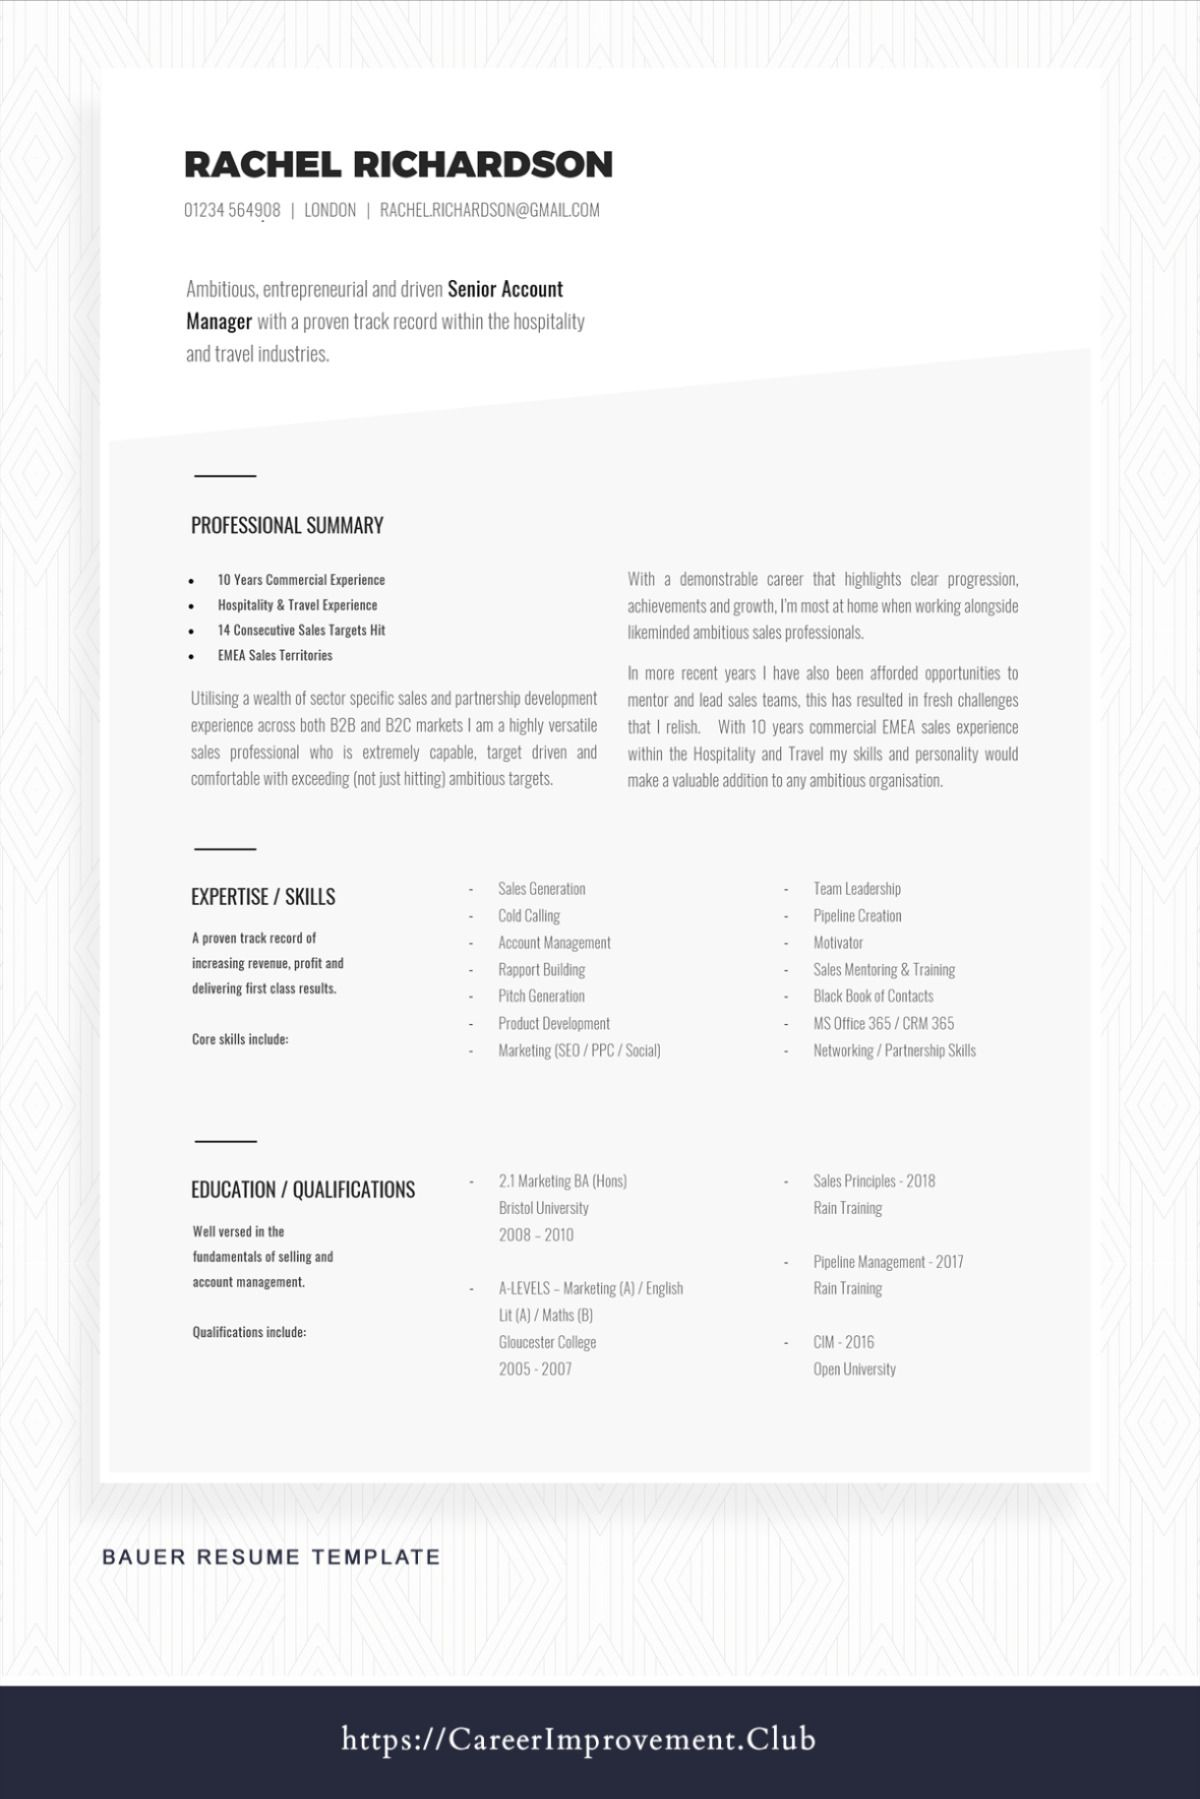 Professional Resume Template For Word Professional Resume Example Including Advice Matching Cover Letter Reference Templates Printable For Word Bauer Professional Resume Examples Resume Template Professional Job Resume Template